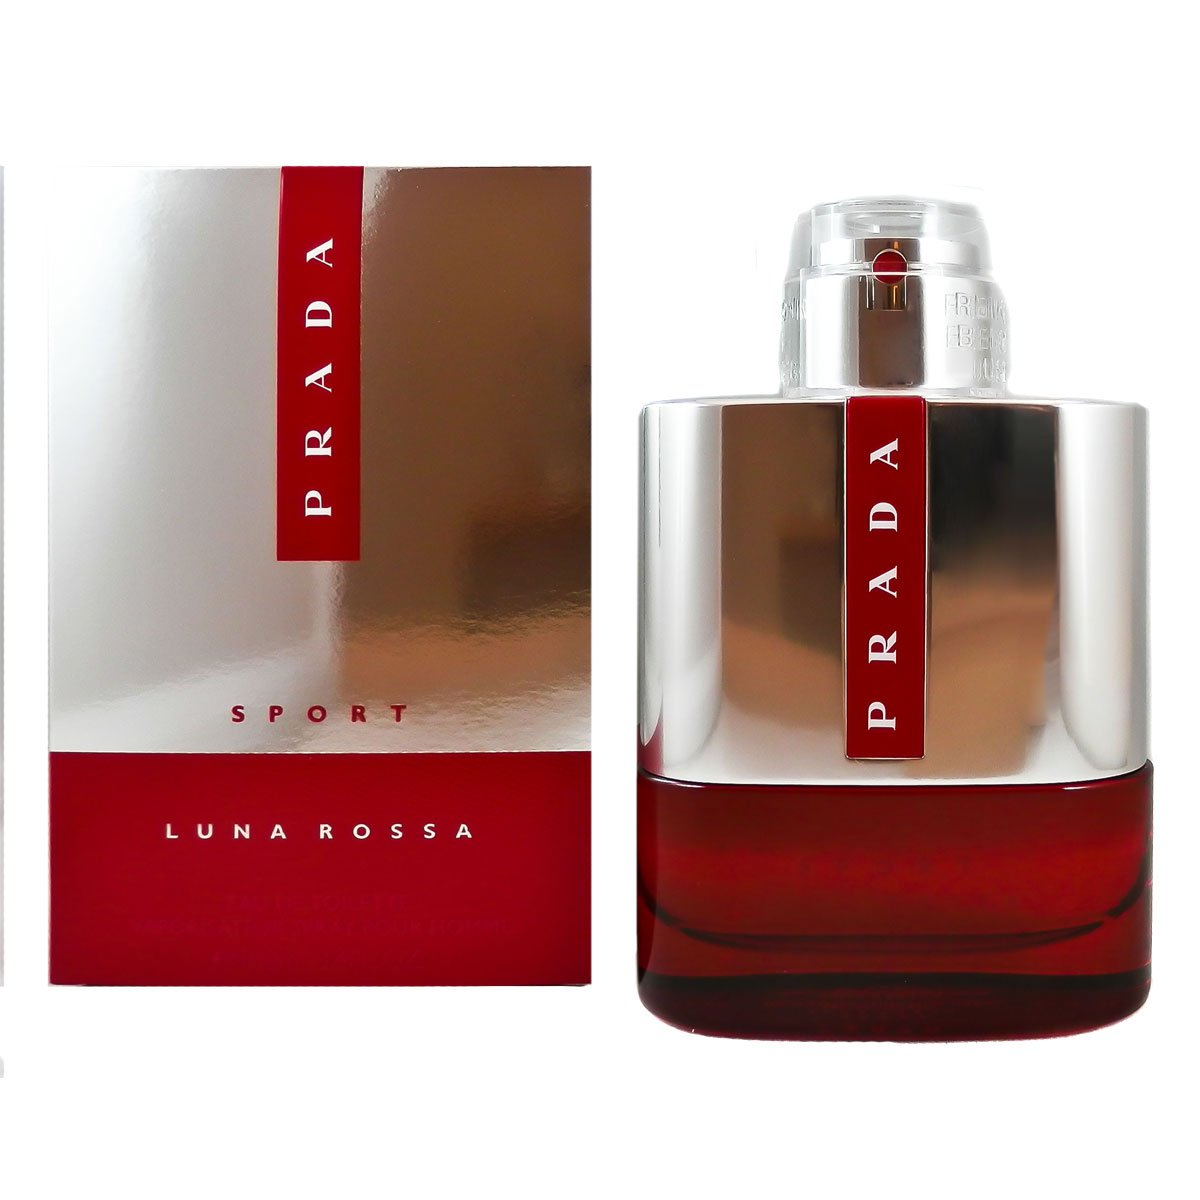 Amazon.com   Prada Luna Rossa Eau de Toilette Spray for Men, 3.4 ... 9cce8c6c9f